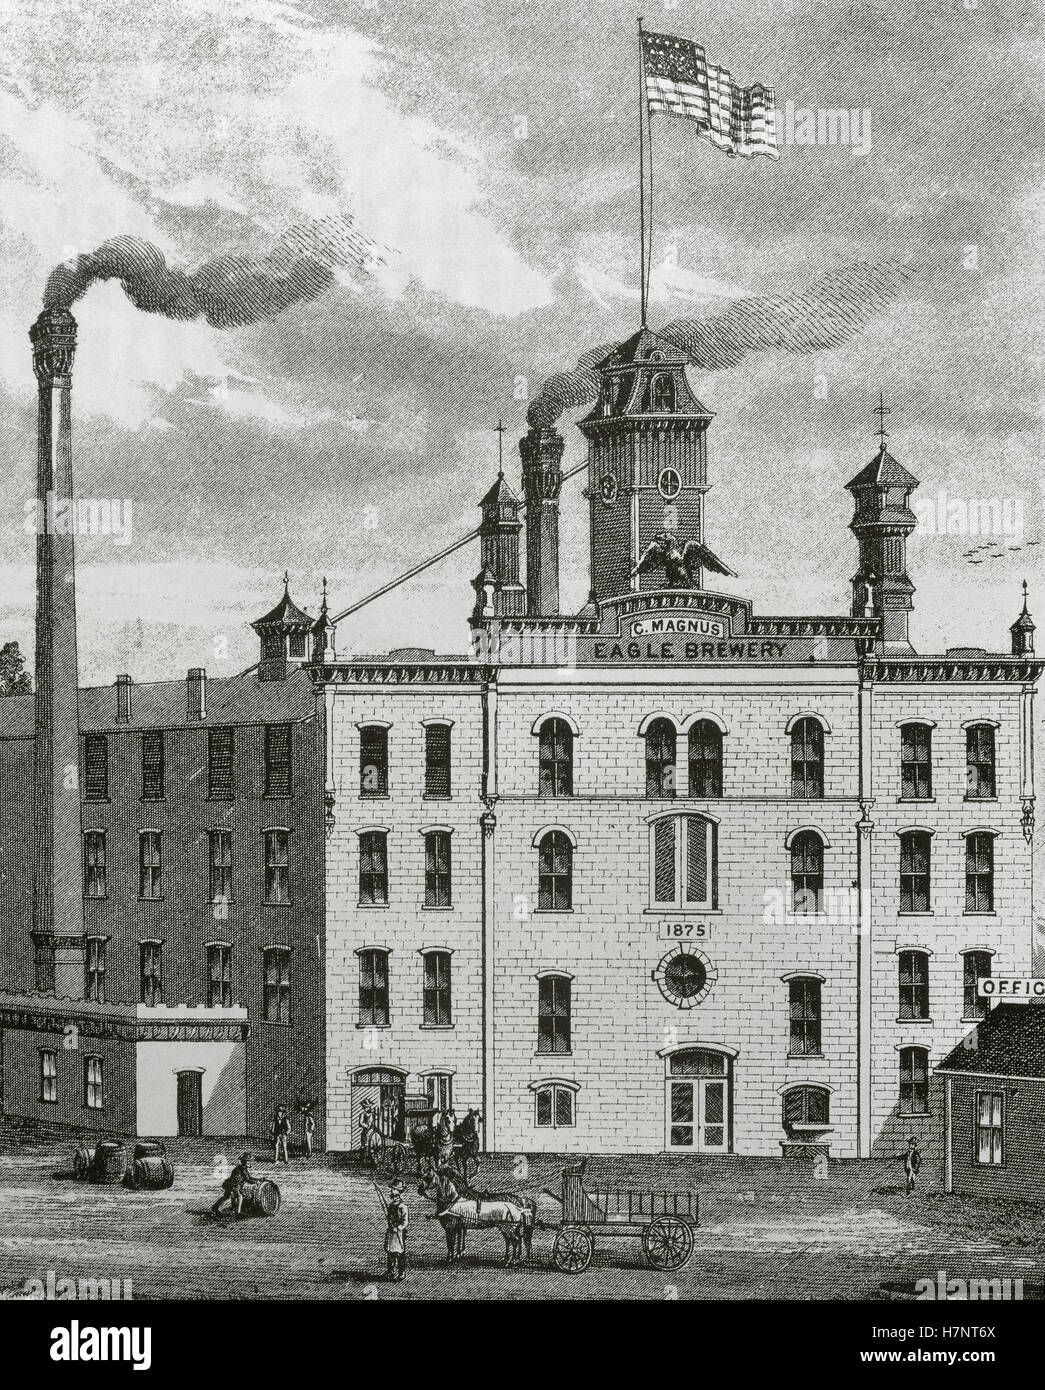 The United States. 19th century. Eagle Brewery of C. Magnus at Cedar Rapids (Iowa), 1875. The largest and only first - Stock Image